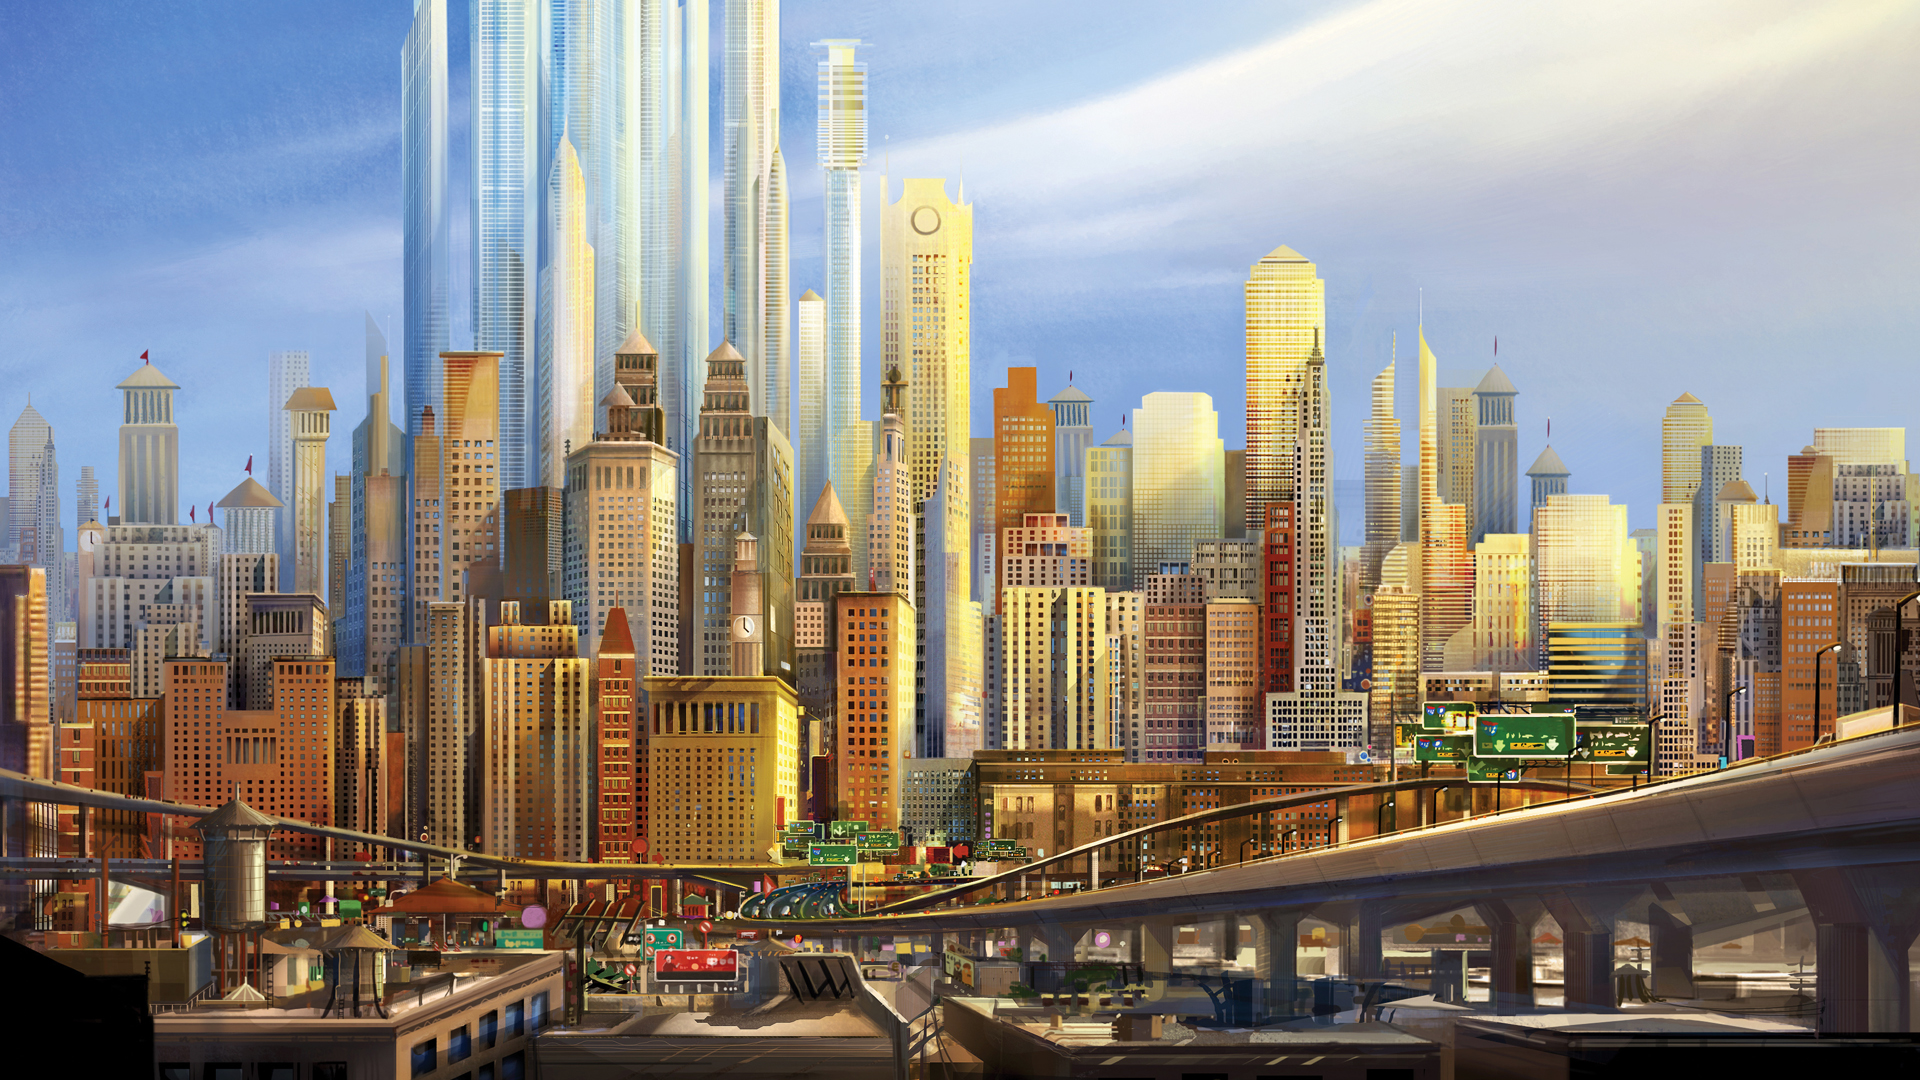 anime city desktop wallpaper hd 64896